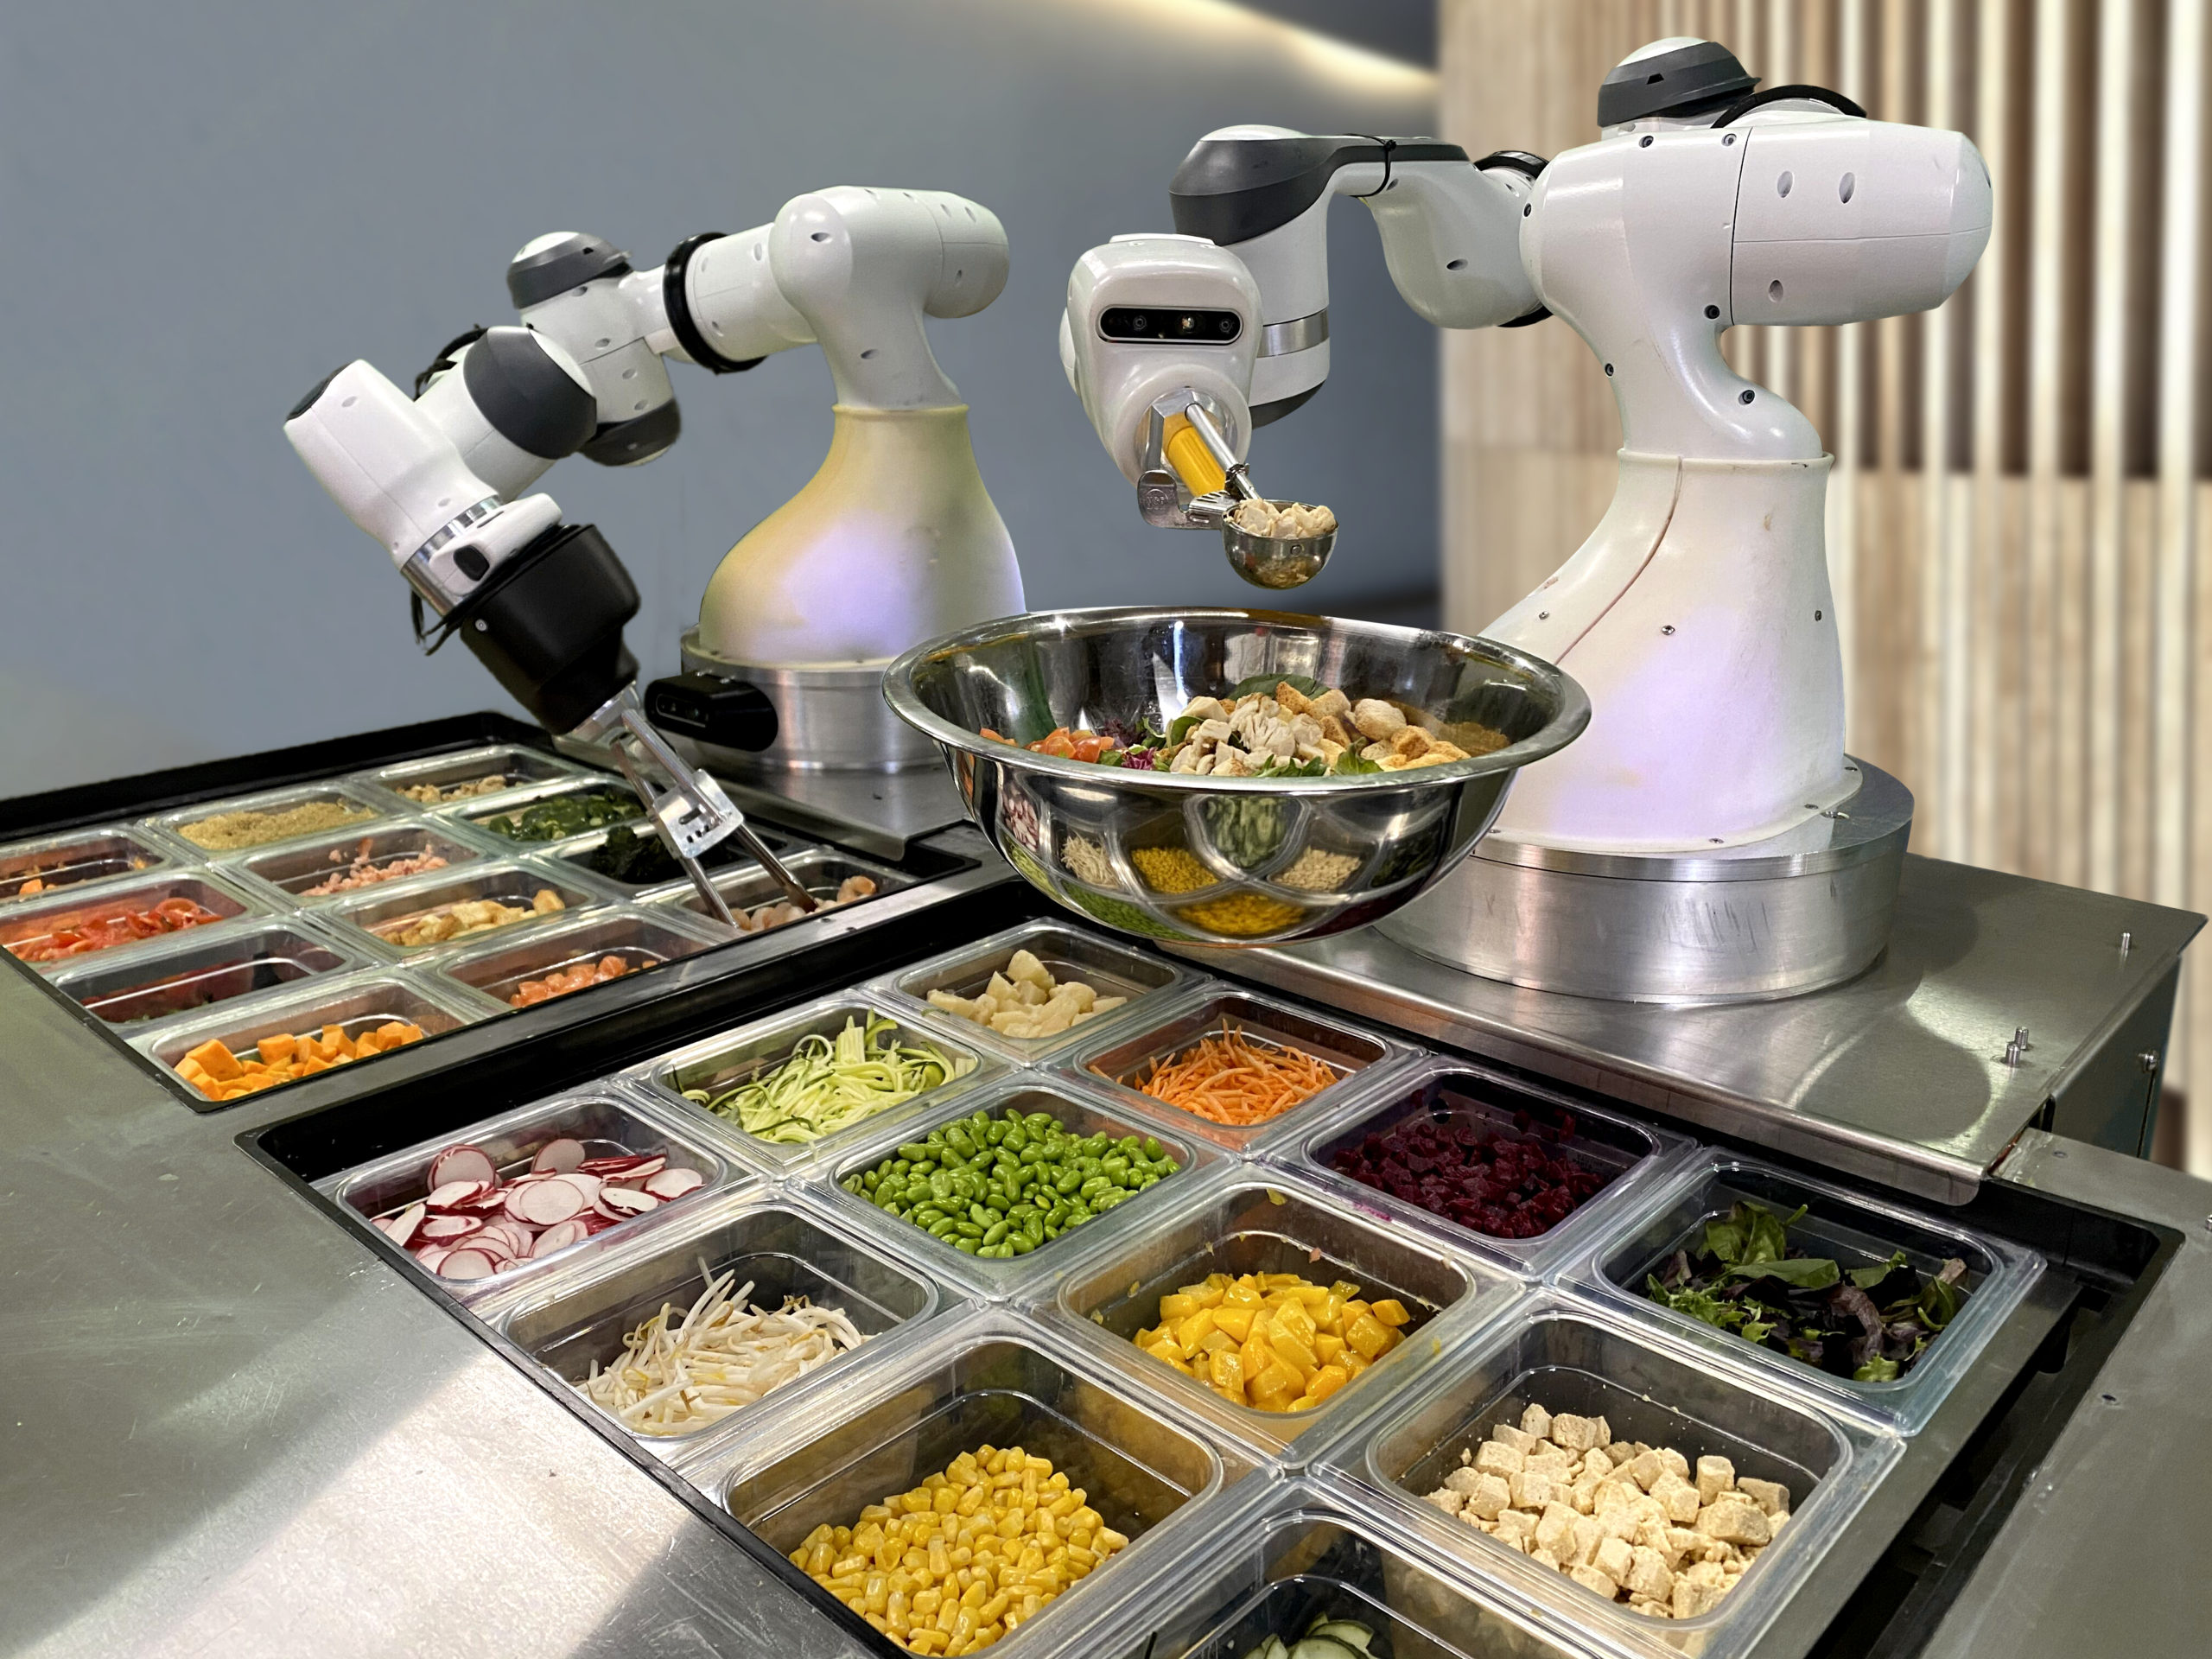 Food Automation and Robotics: For improved food manufacturing and packaging